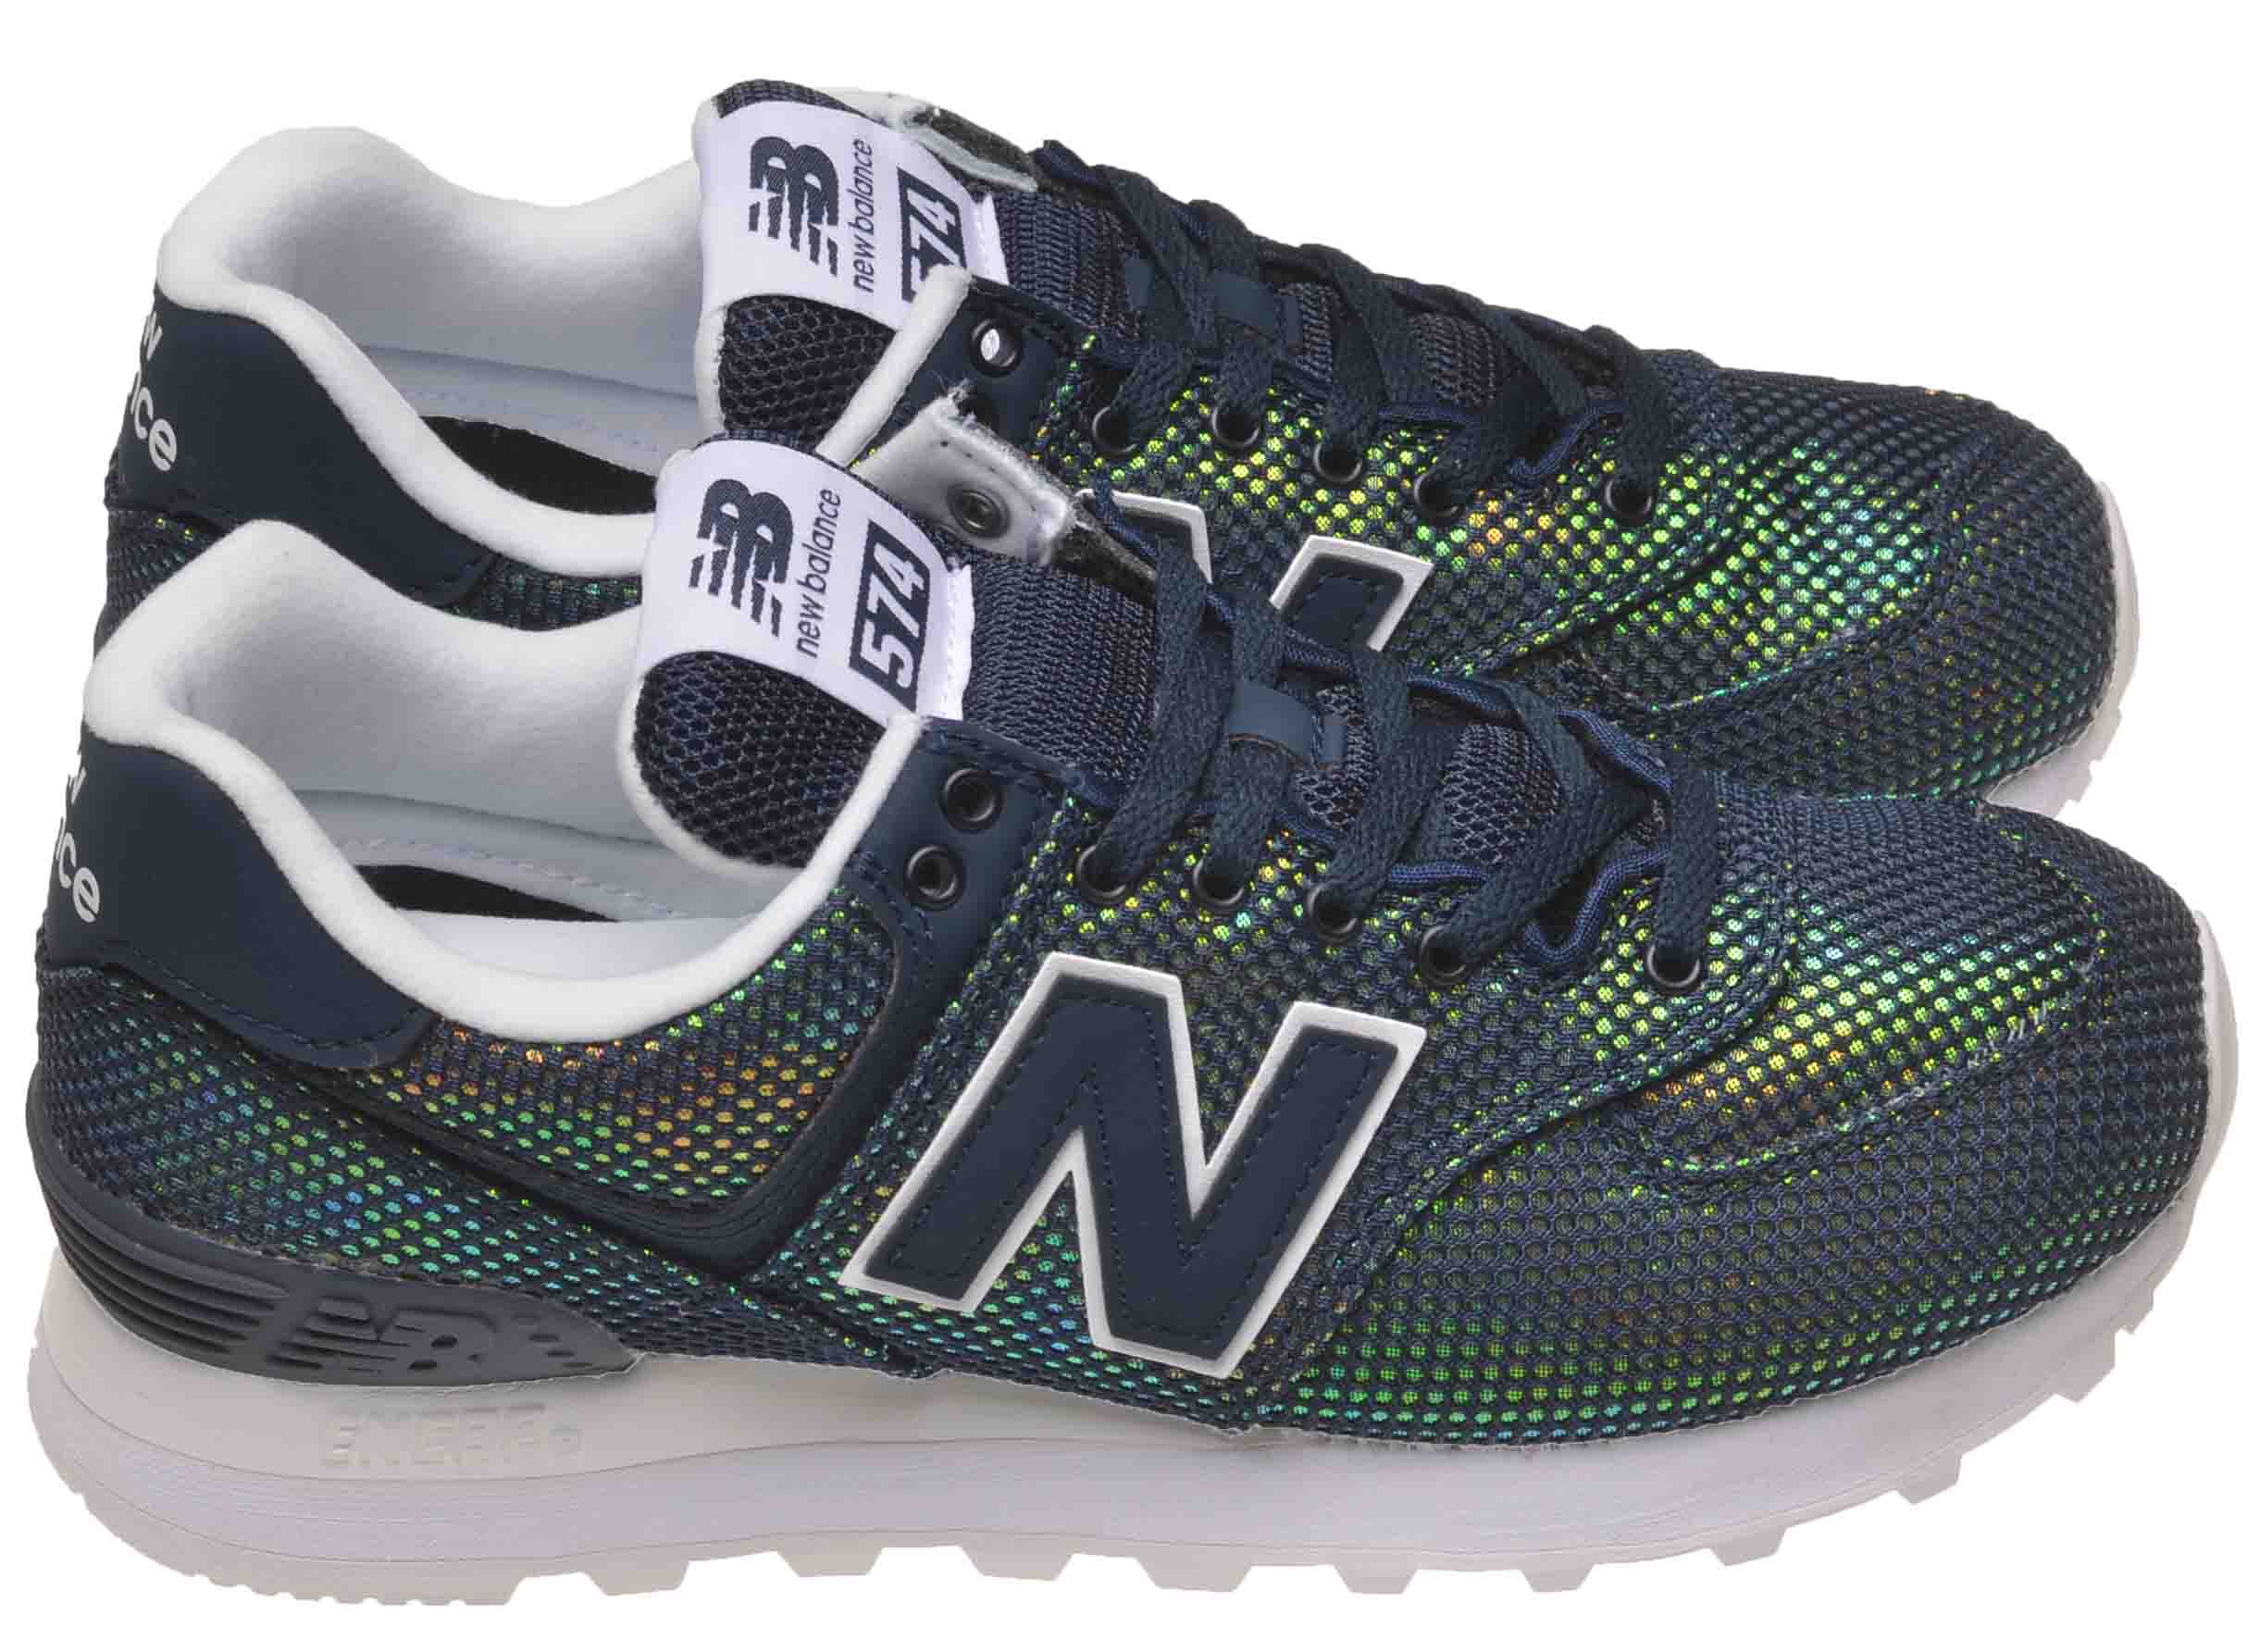 Clothing, Shoes & Accessories Women's Shoes Nice New Balance Wl574ubc